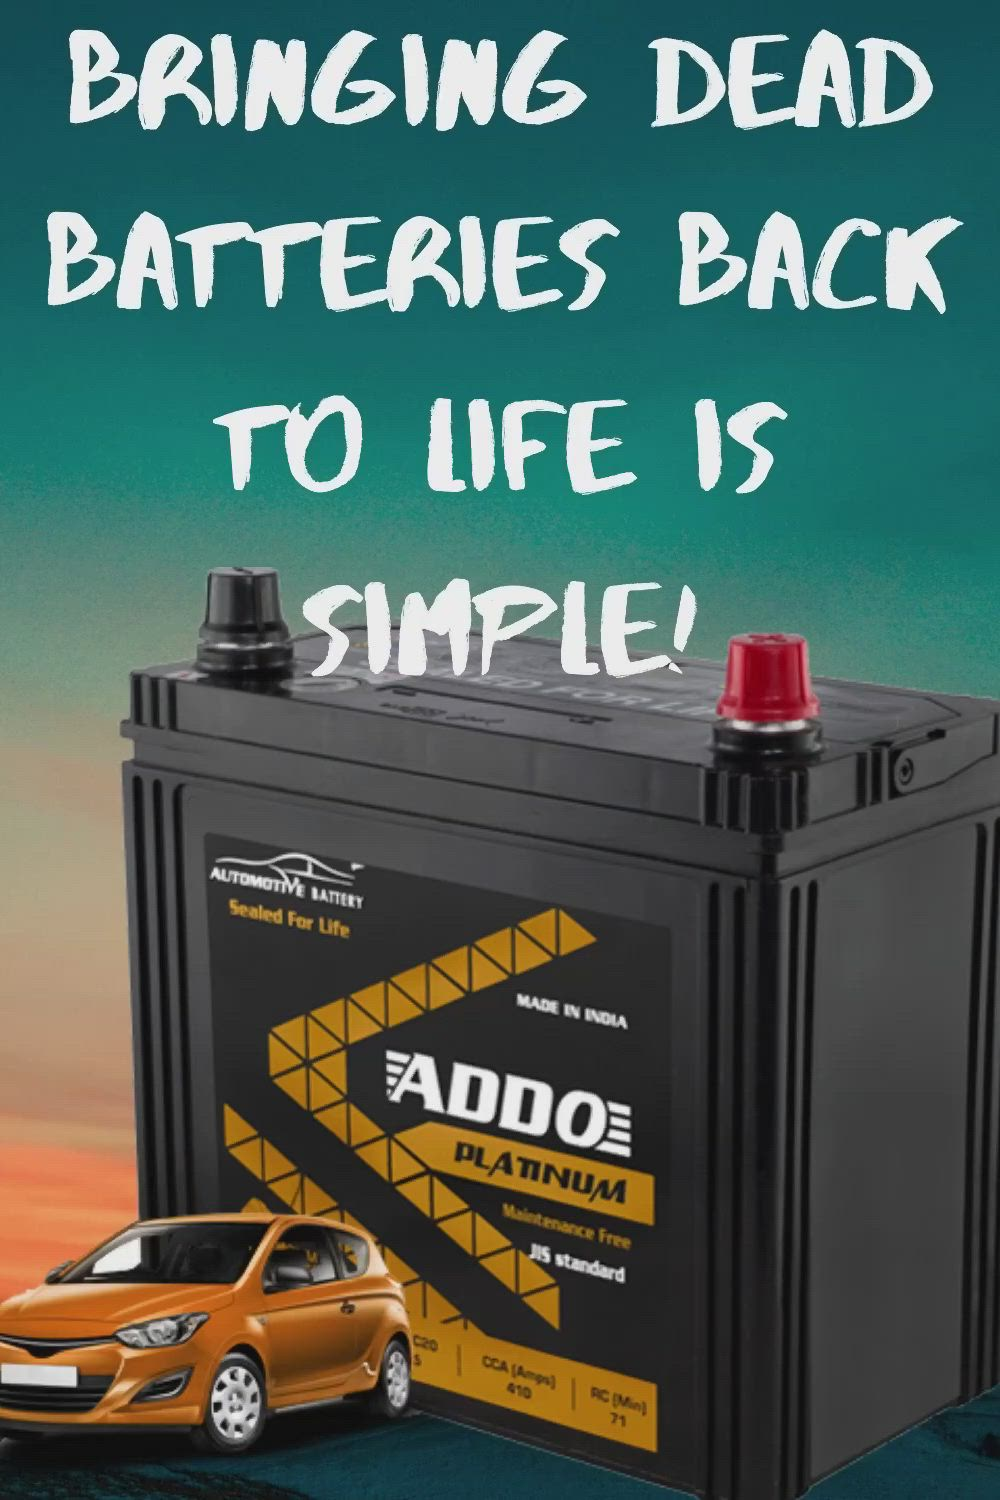 How To Restore A Battery Reconditioning Nicad Batteries Battery Reconditioning Business Fix It Video In 2021 Ryobi Battery Batteries Diy Battery Repair